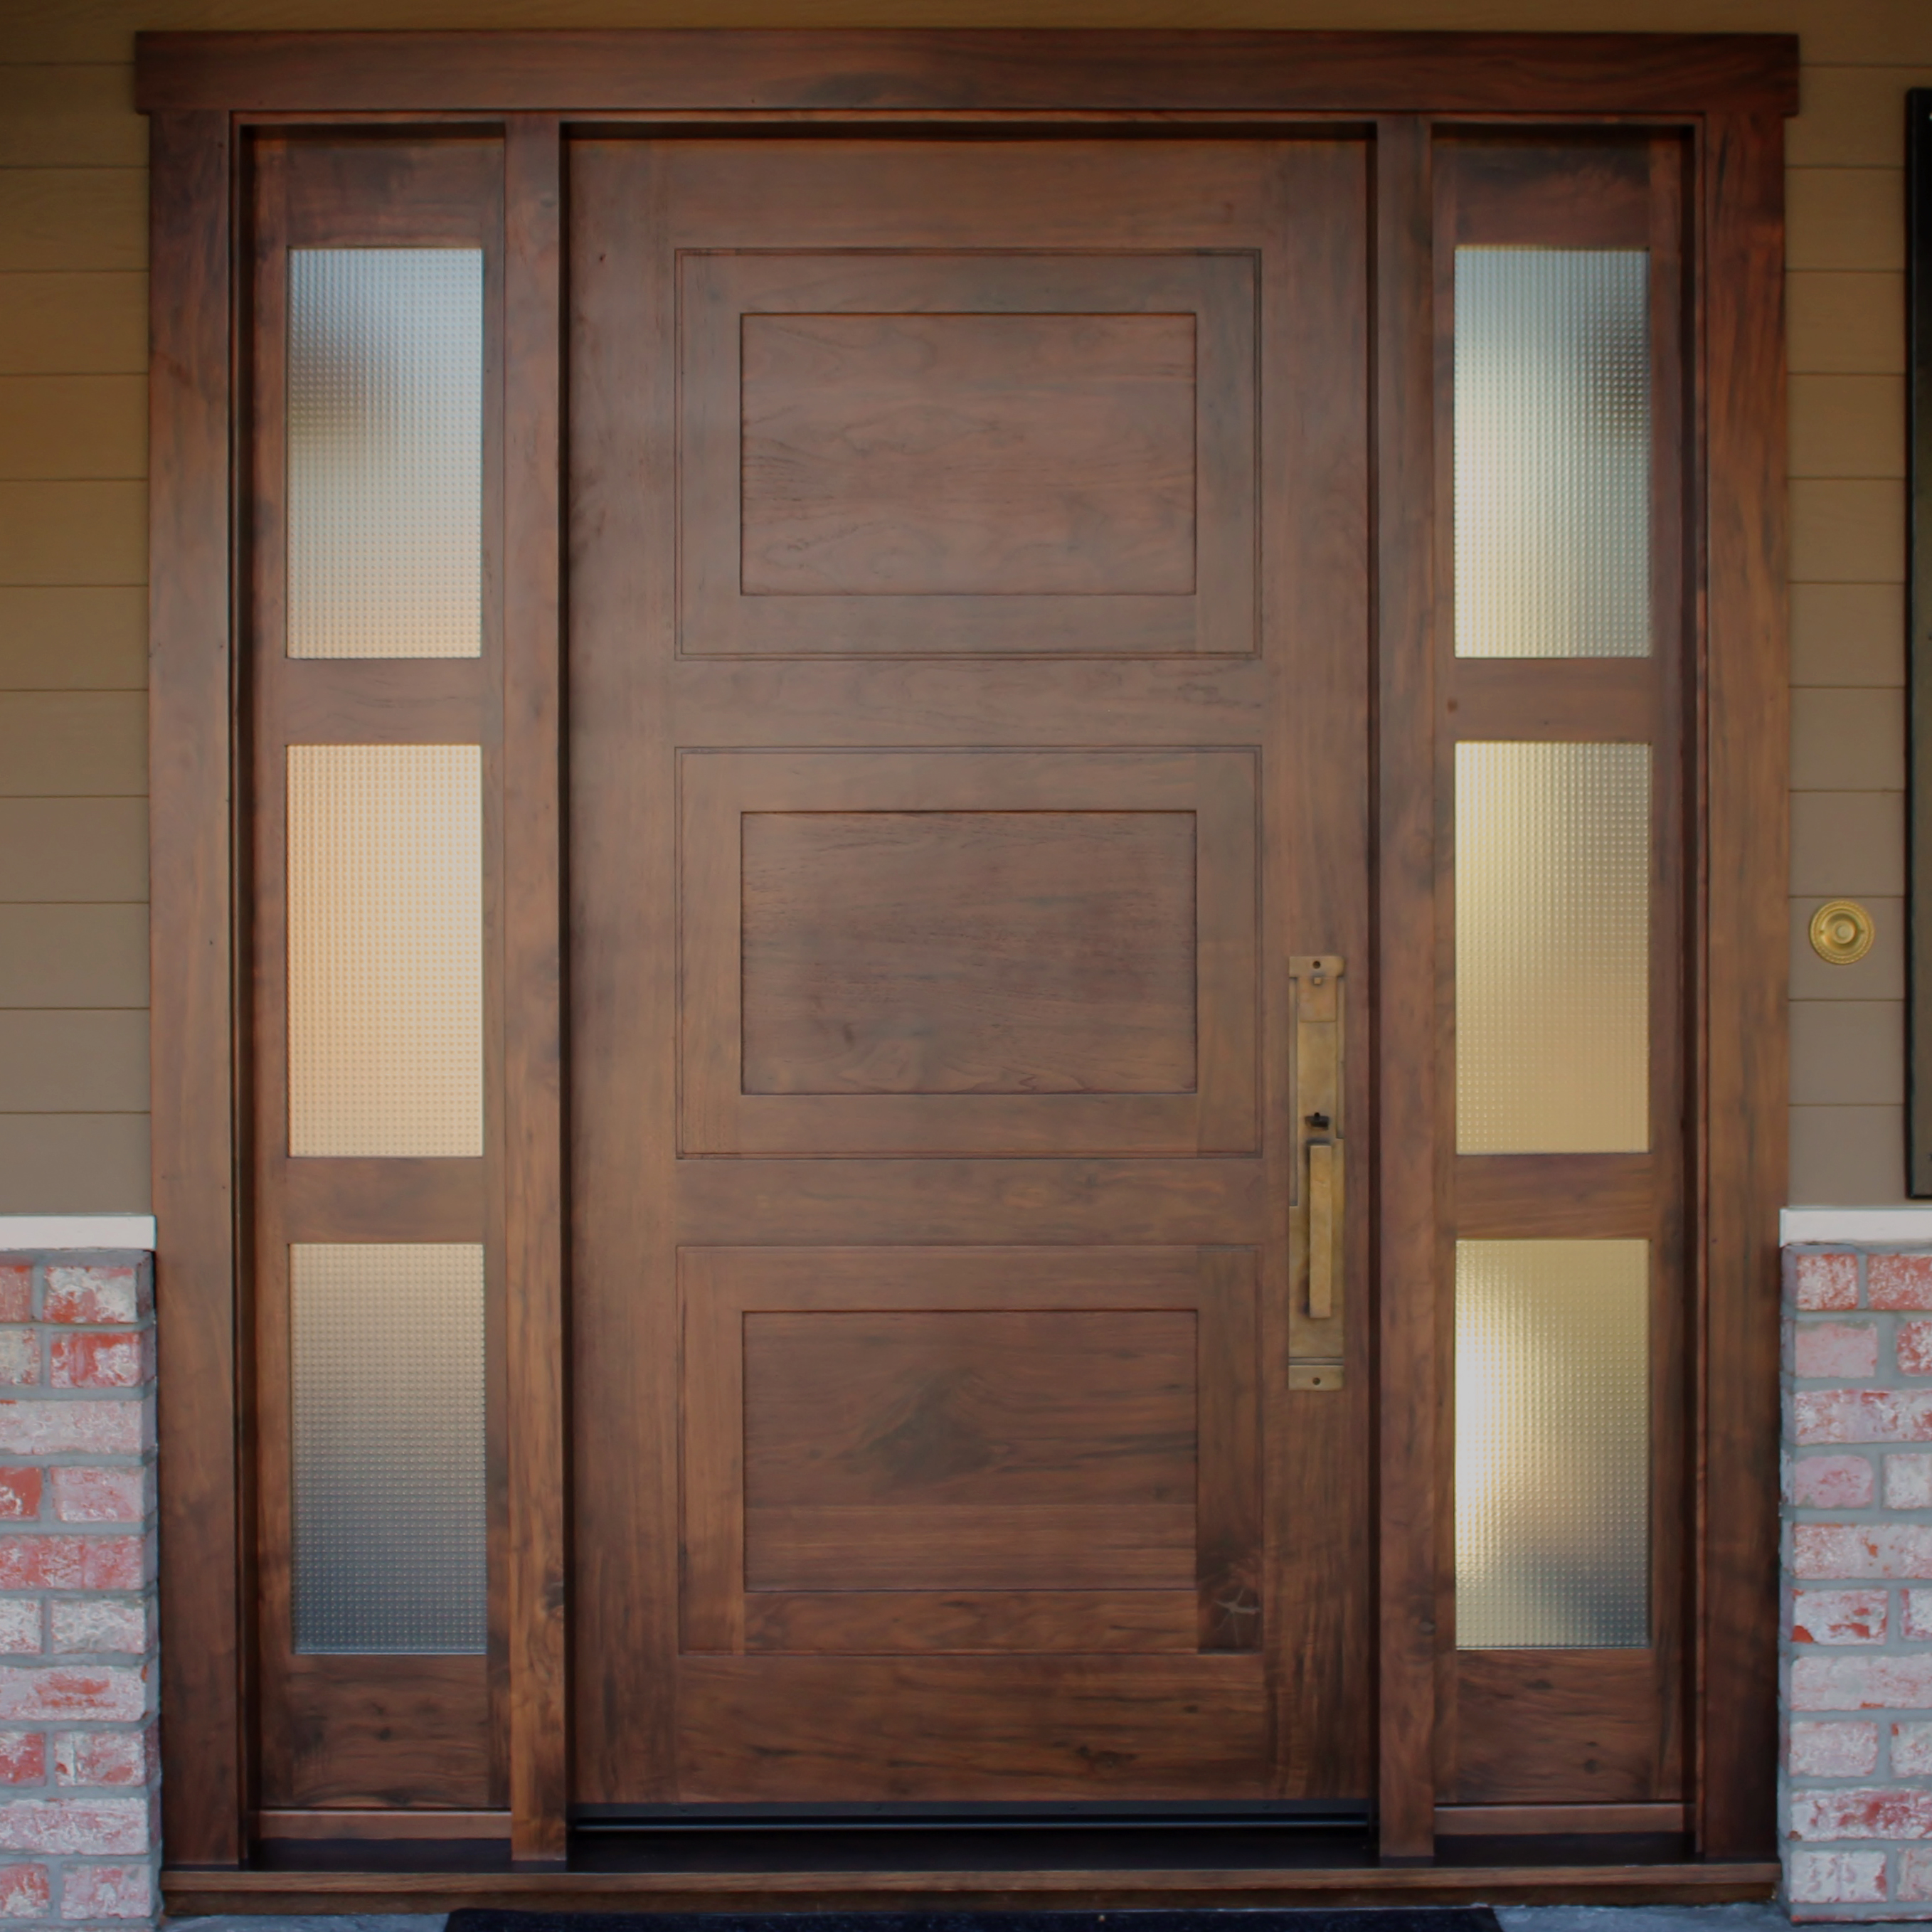 Gorgeous ... & Knotty Walnut Door and Sidelights | Antigua Doors